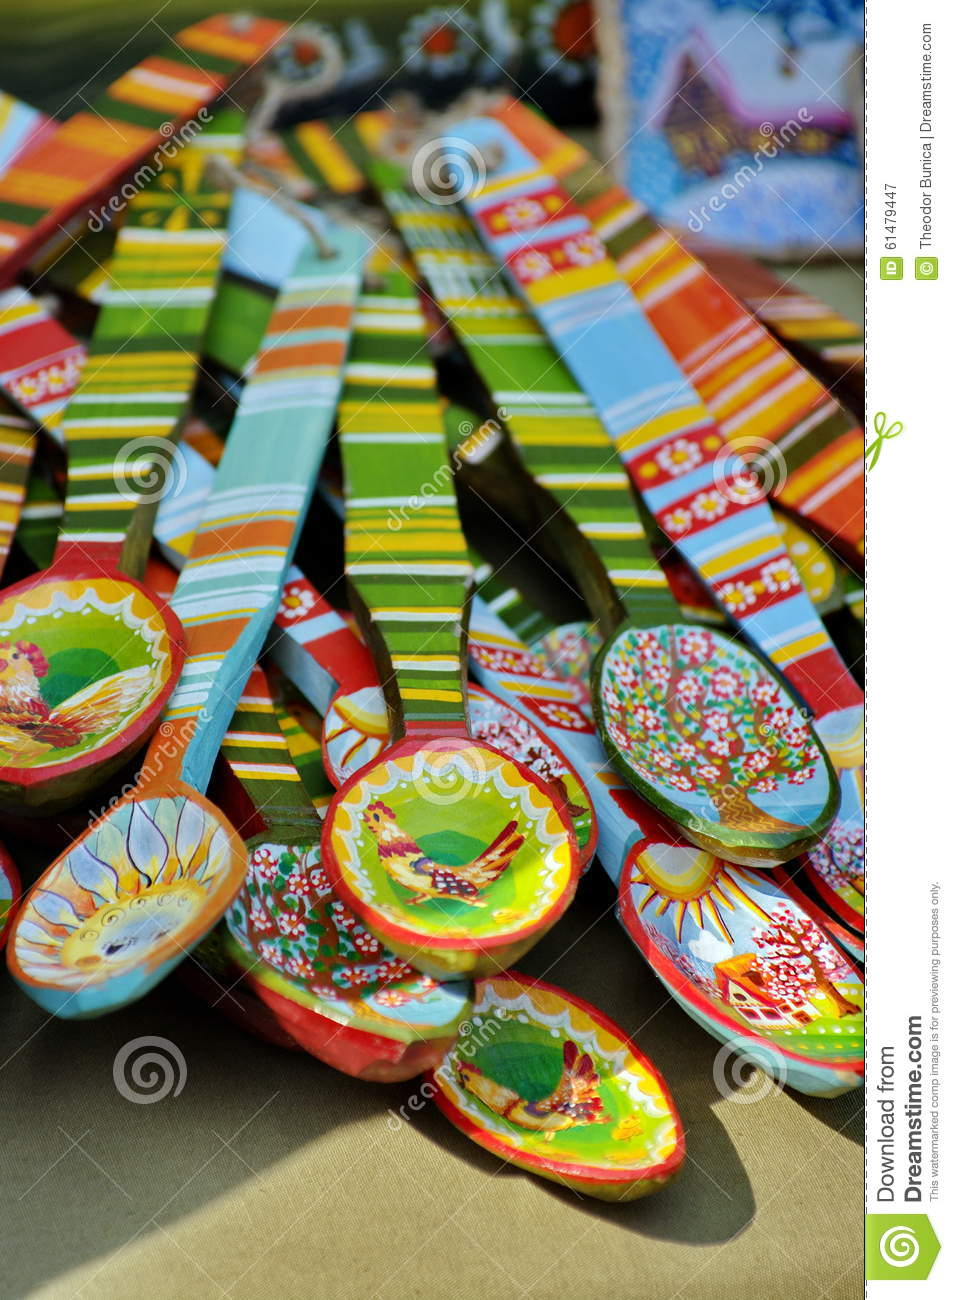 Colorful Spoons: Handmade. Traditional Painted Colored Wooden Spoons